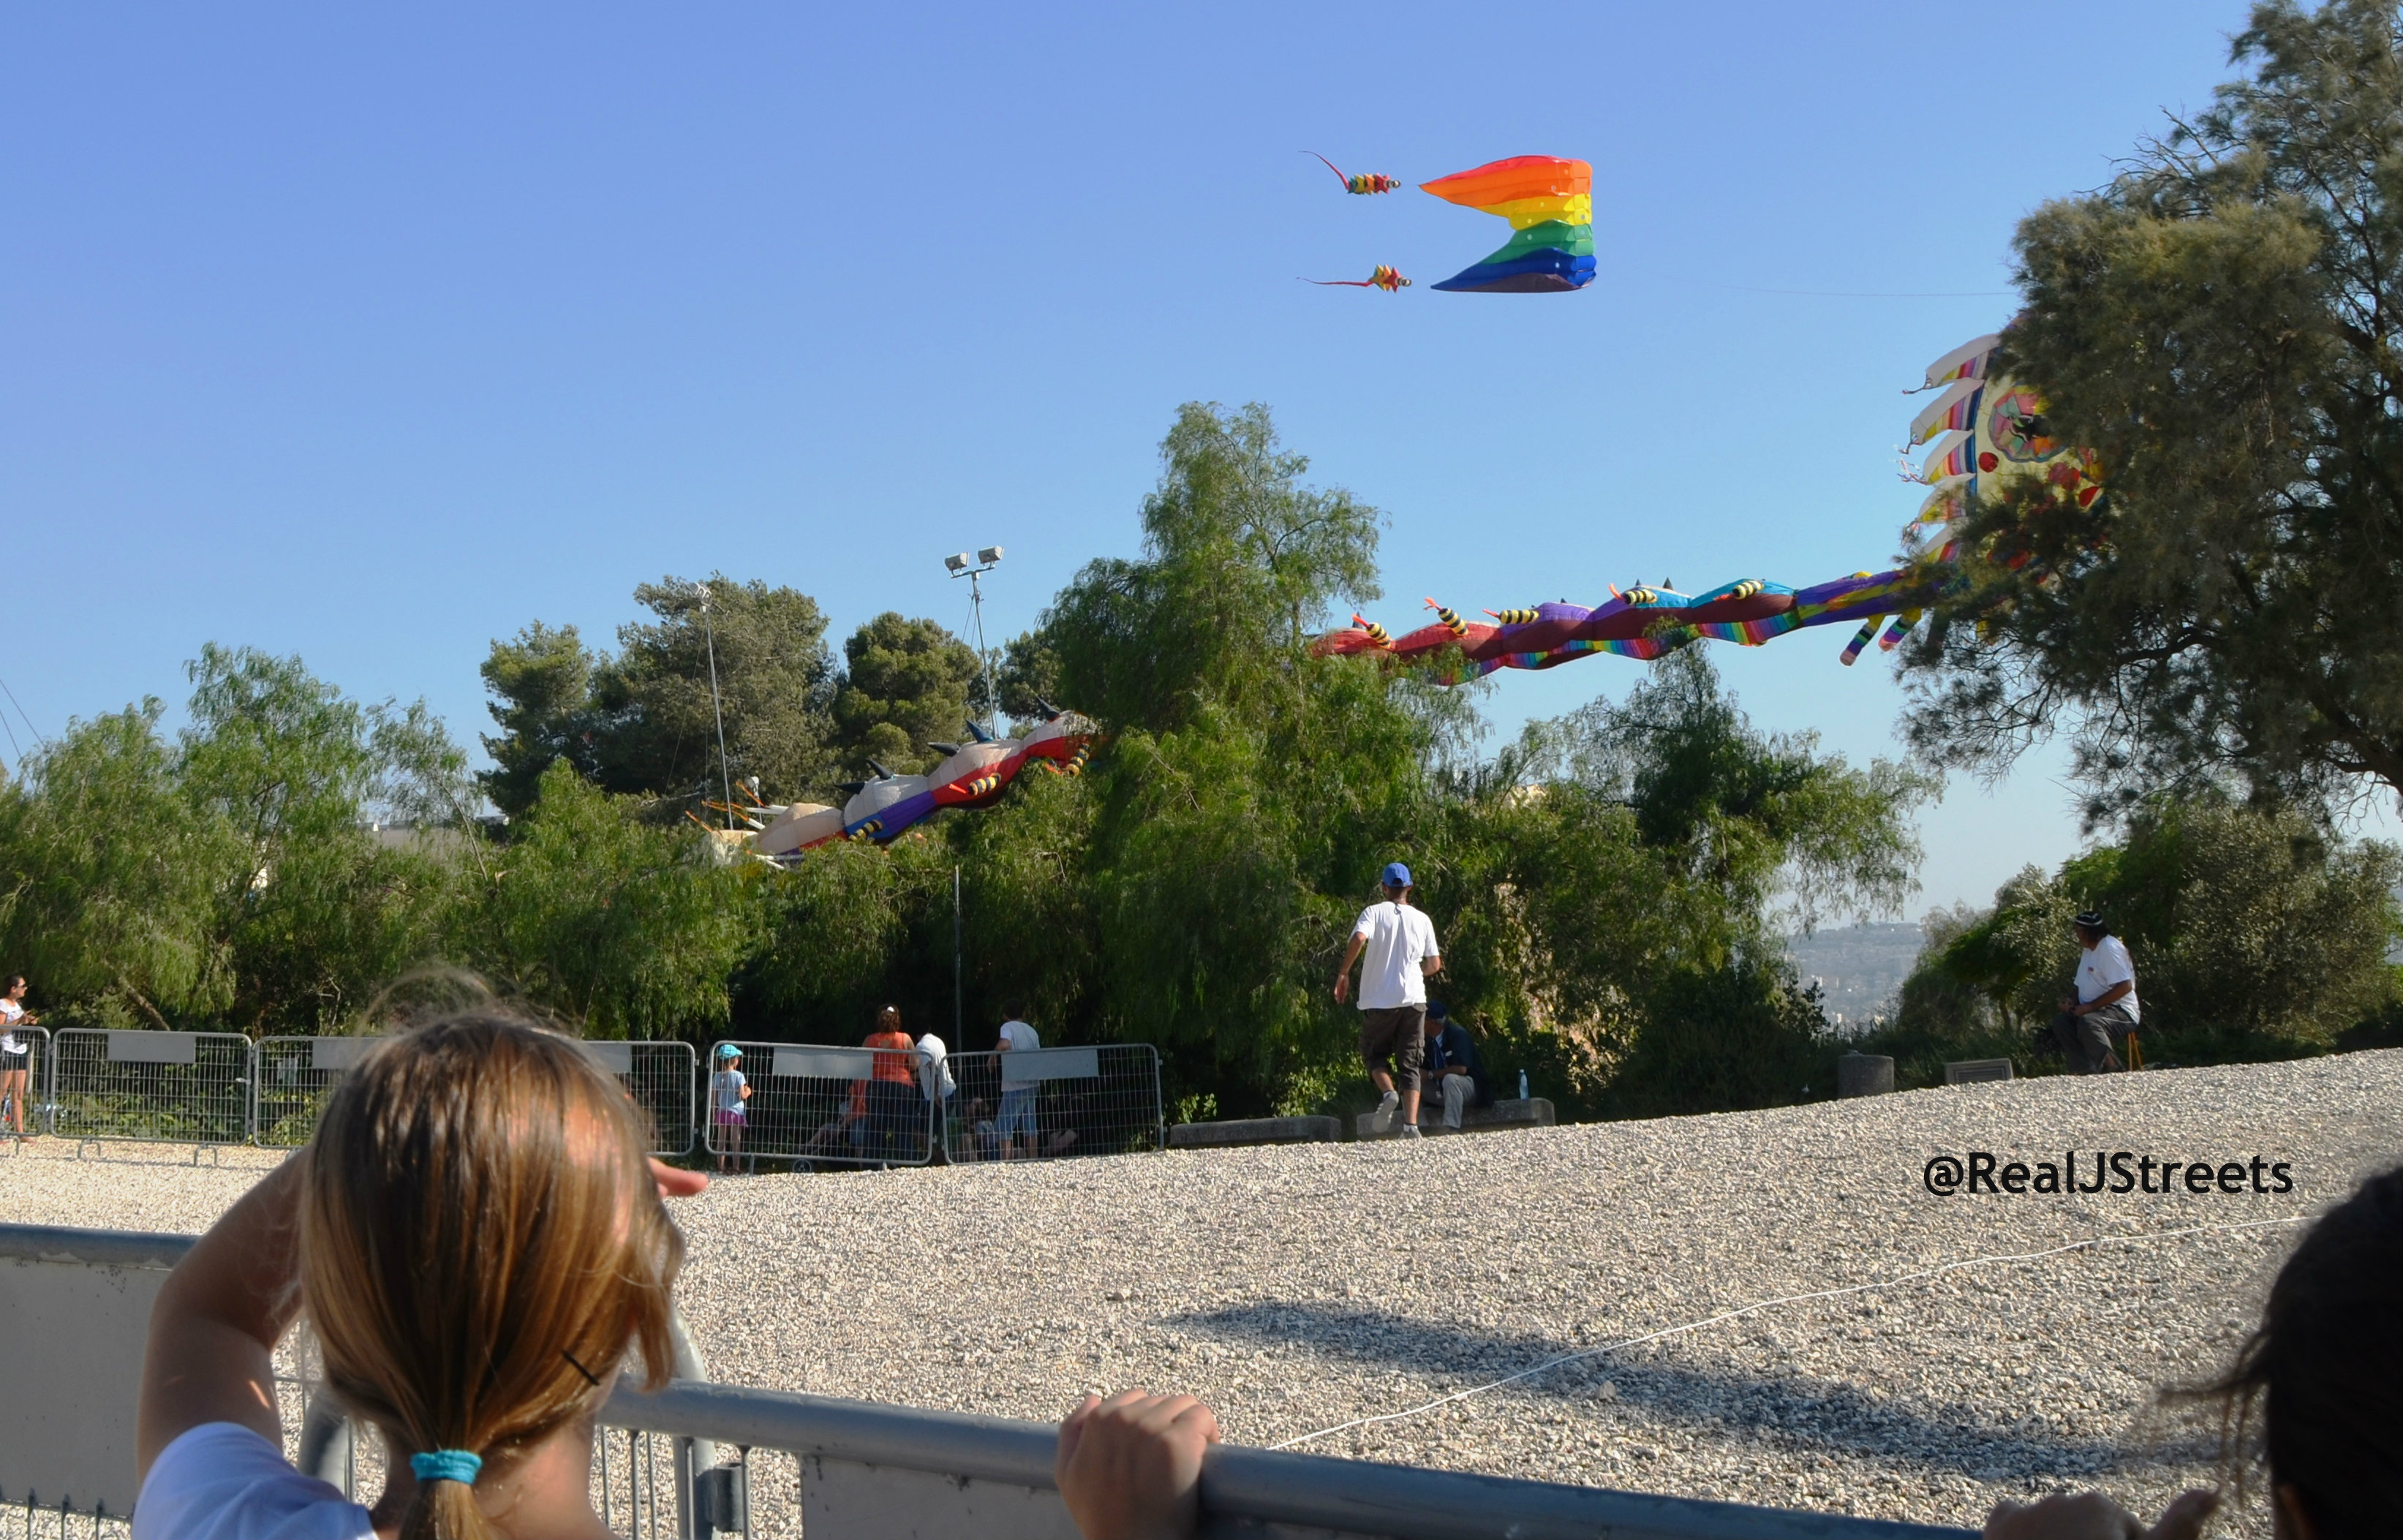 large kite down, Jerusalem kite festival